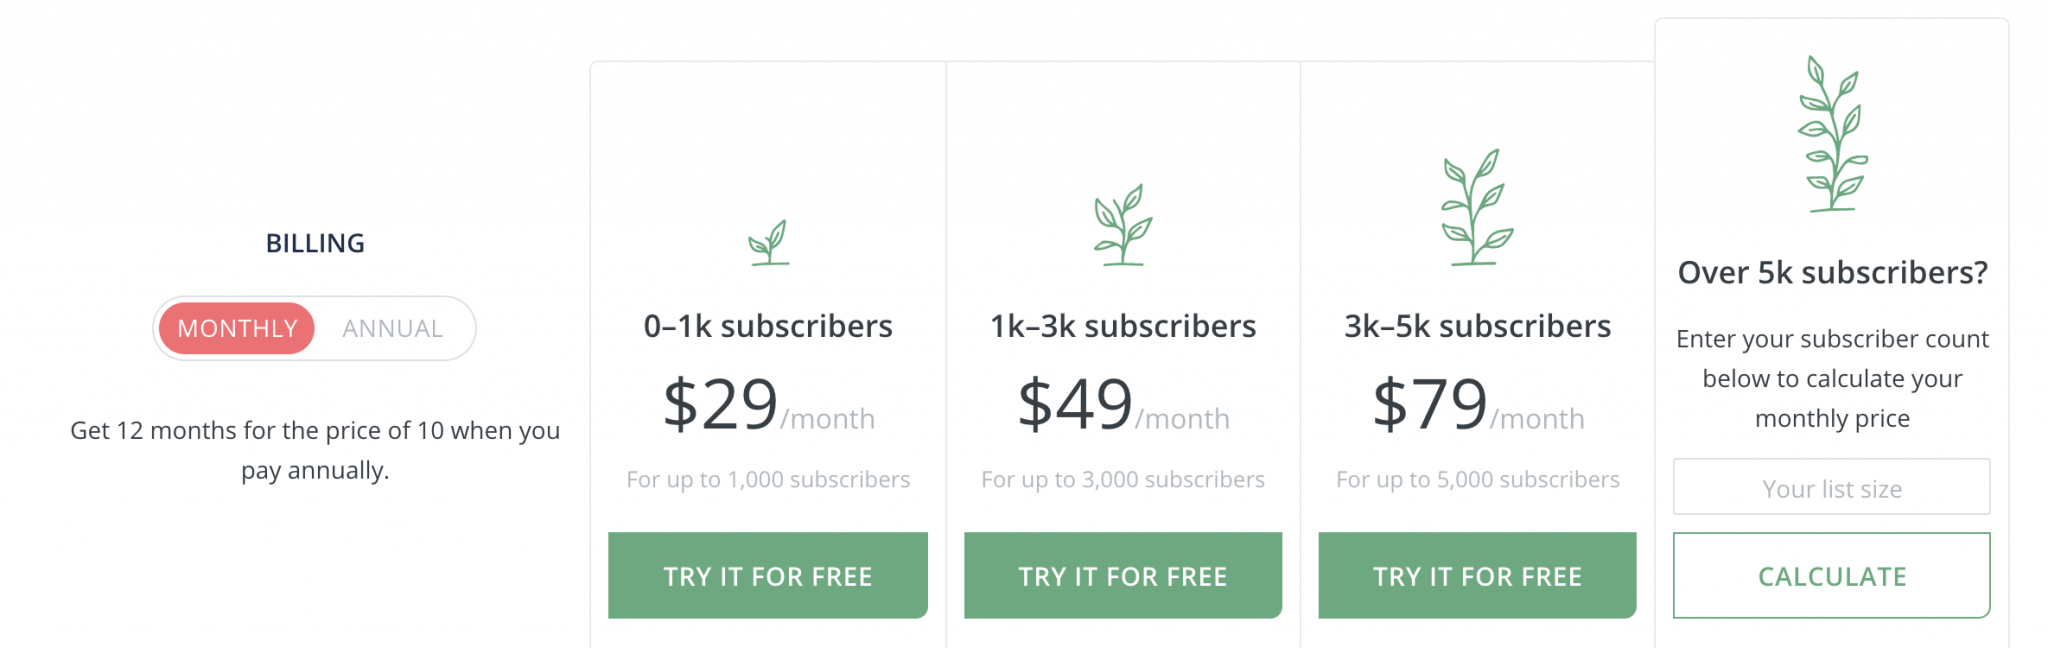 75% Off Online Voucher Code Convertkit Email Marketing 2020